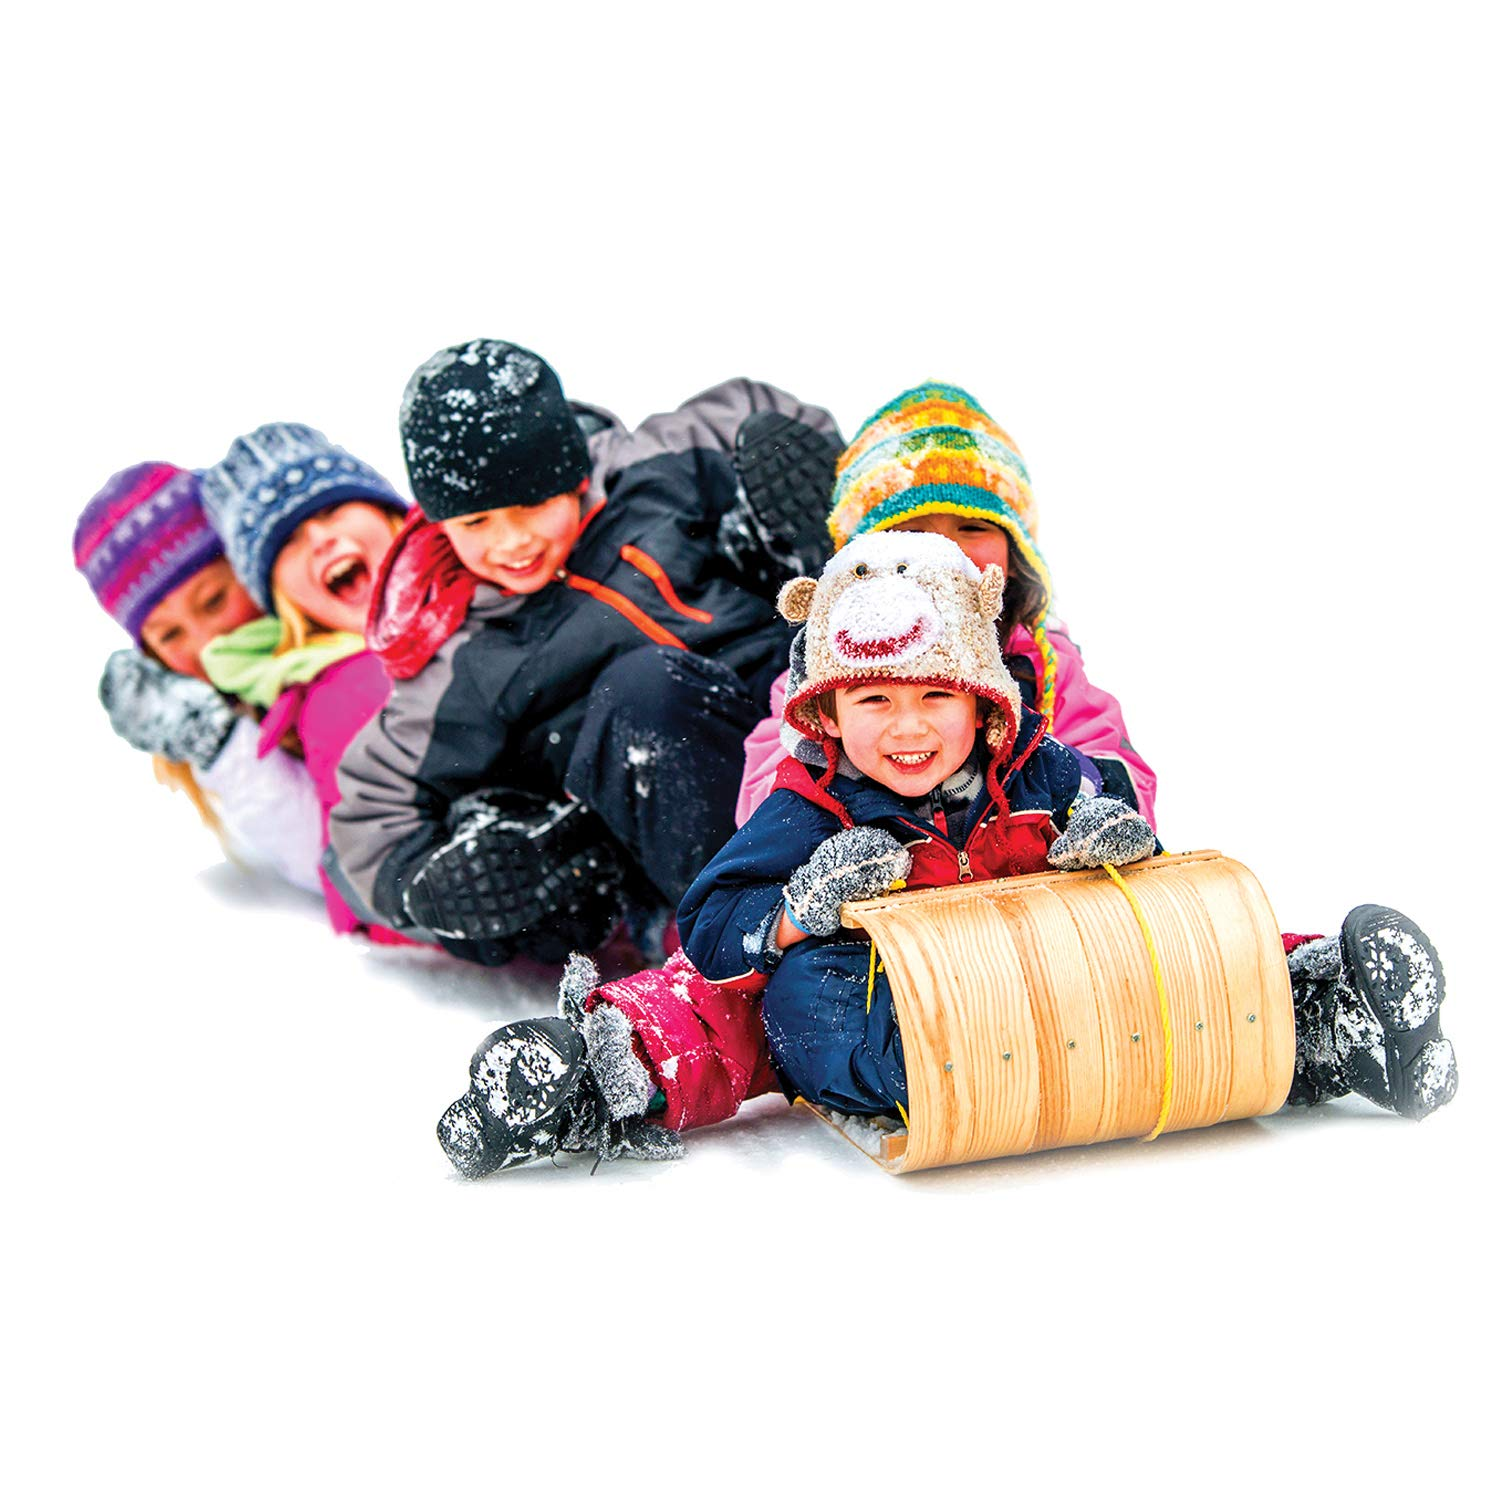 Flexible Flyer Wood Toboggan. Snow Sled Adults Kids